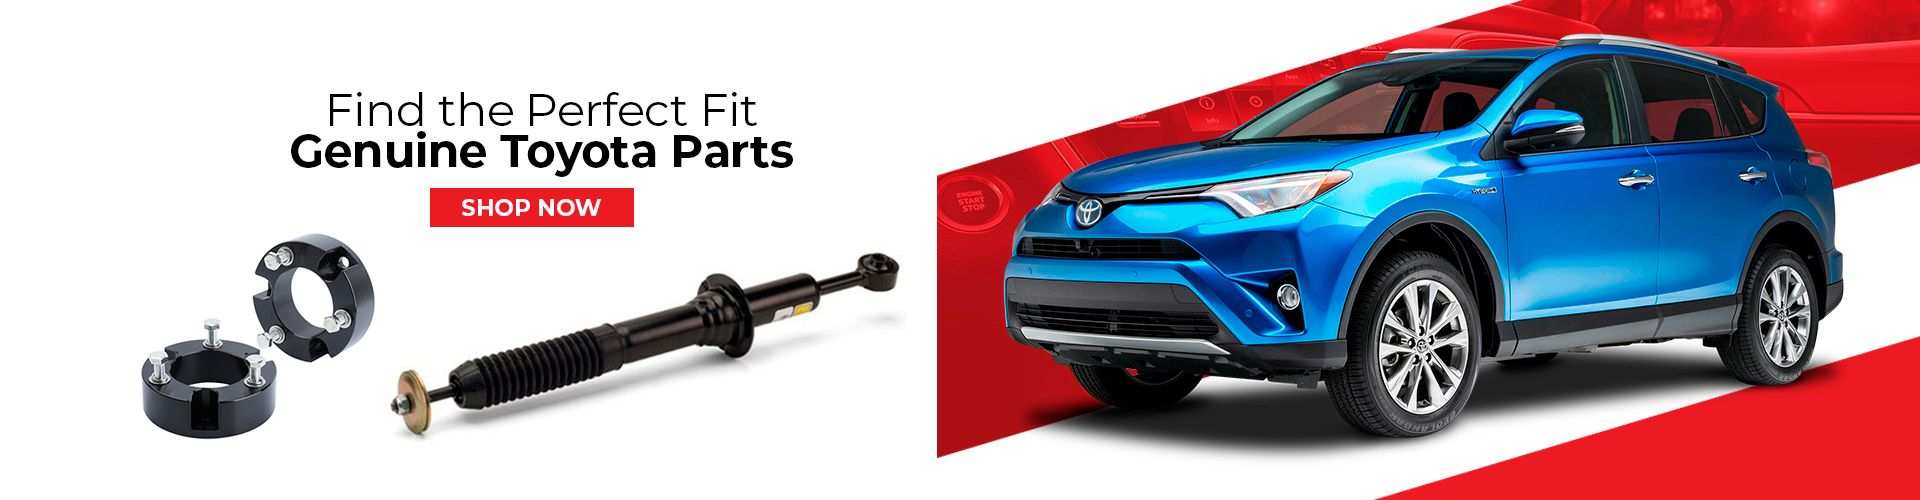 Shop Genuine Toyota Parts and Accessories